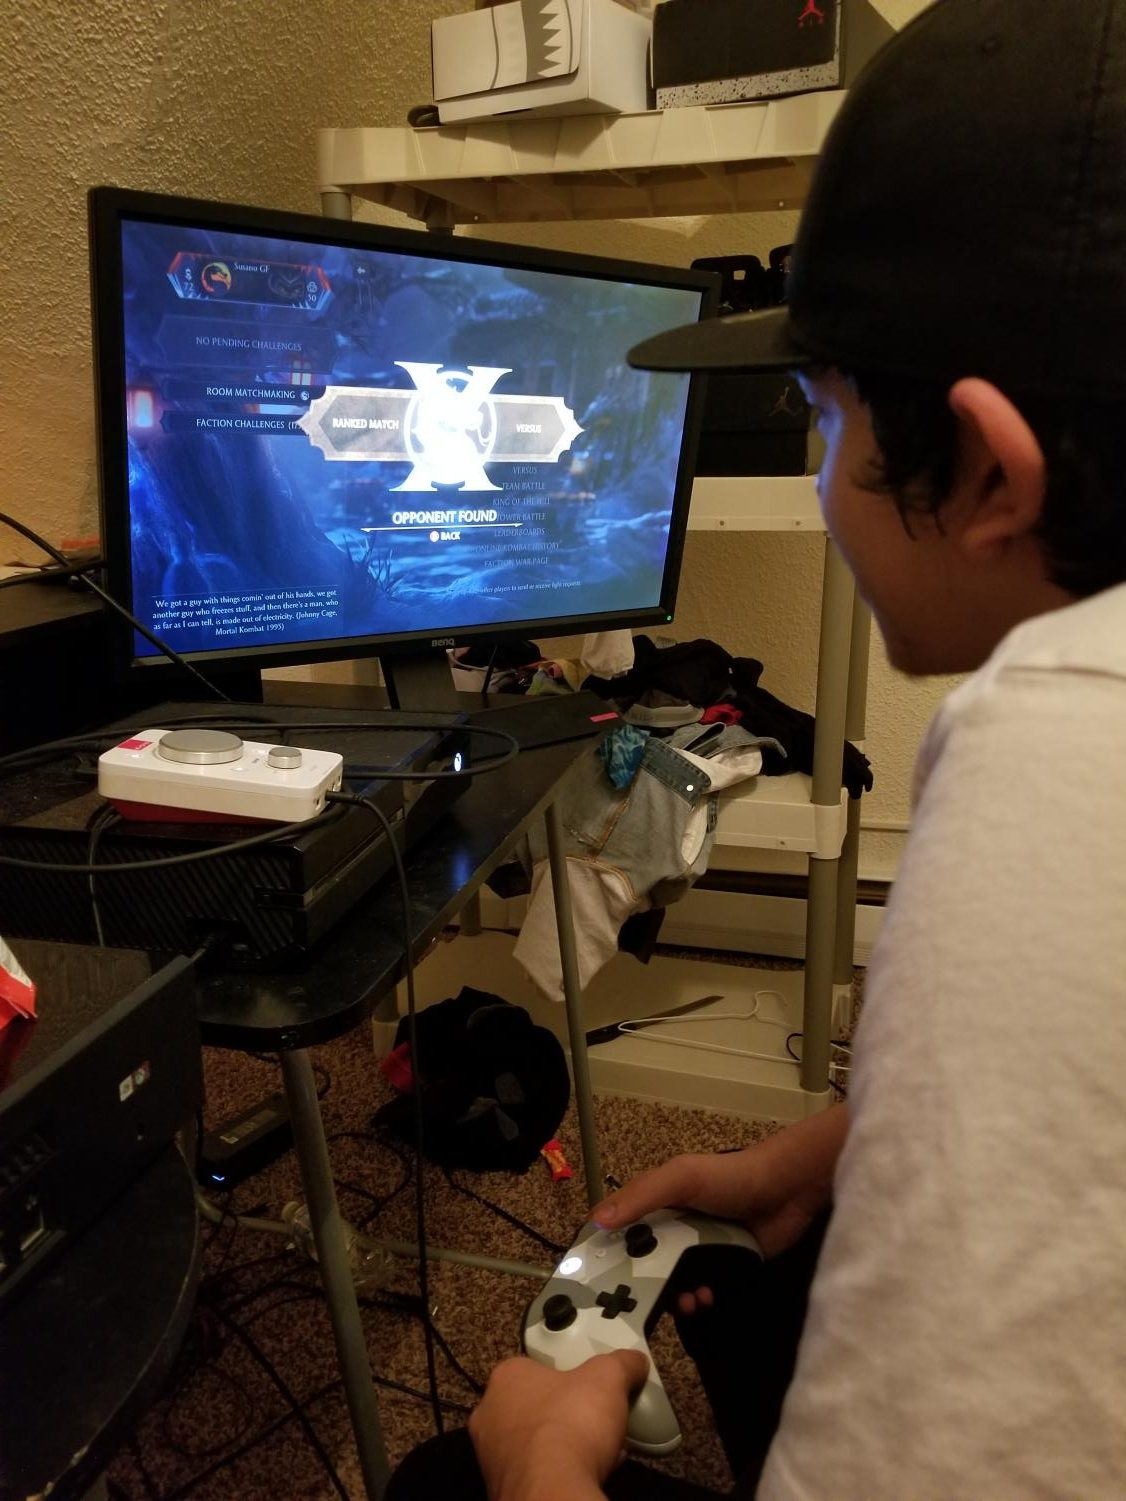 Daniel Villalobos plays Mortal Kombat X at his home on Dec. 8th.